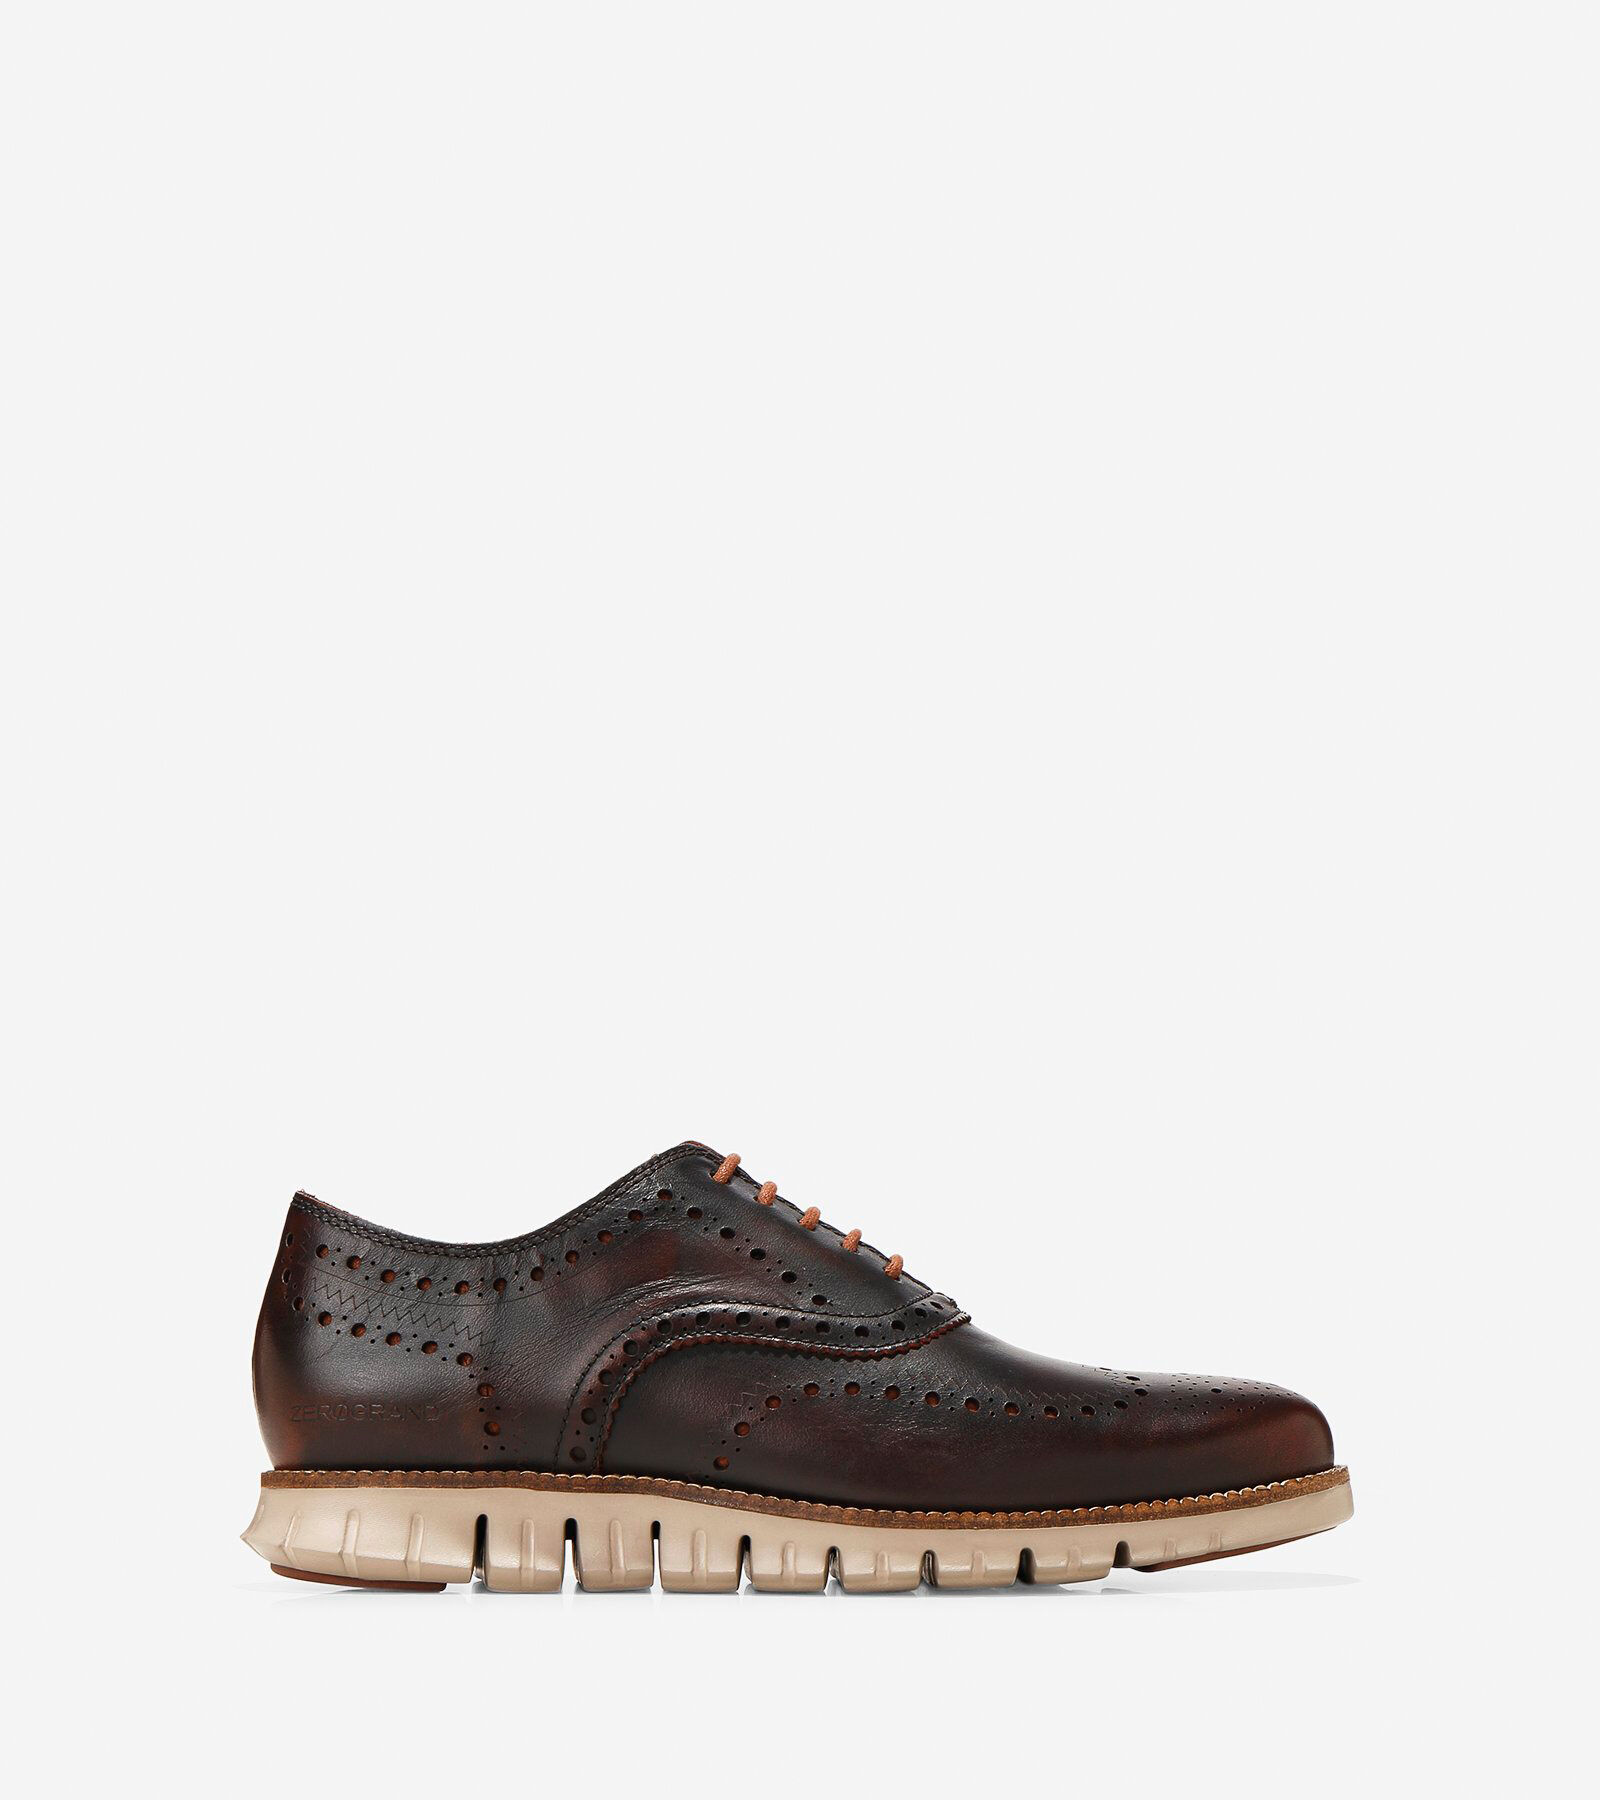 cole haan shoes 2018 summerfest map parking 717911